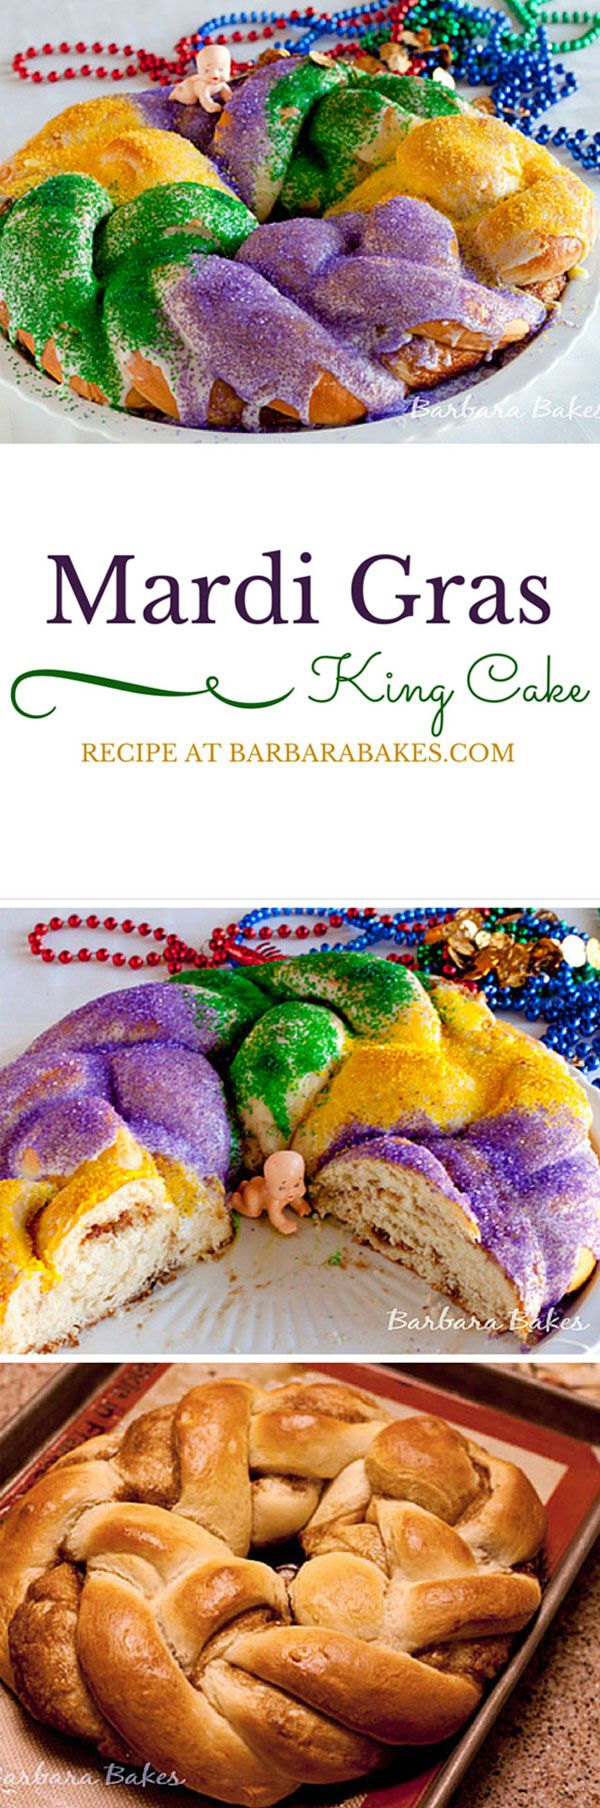 No Mardi Gras celebration is complete without a colorful King Cake